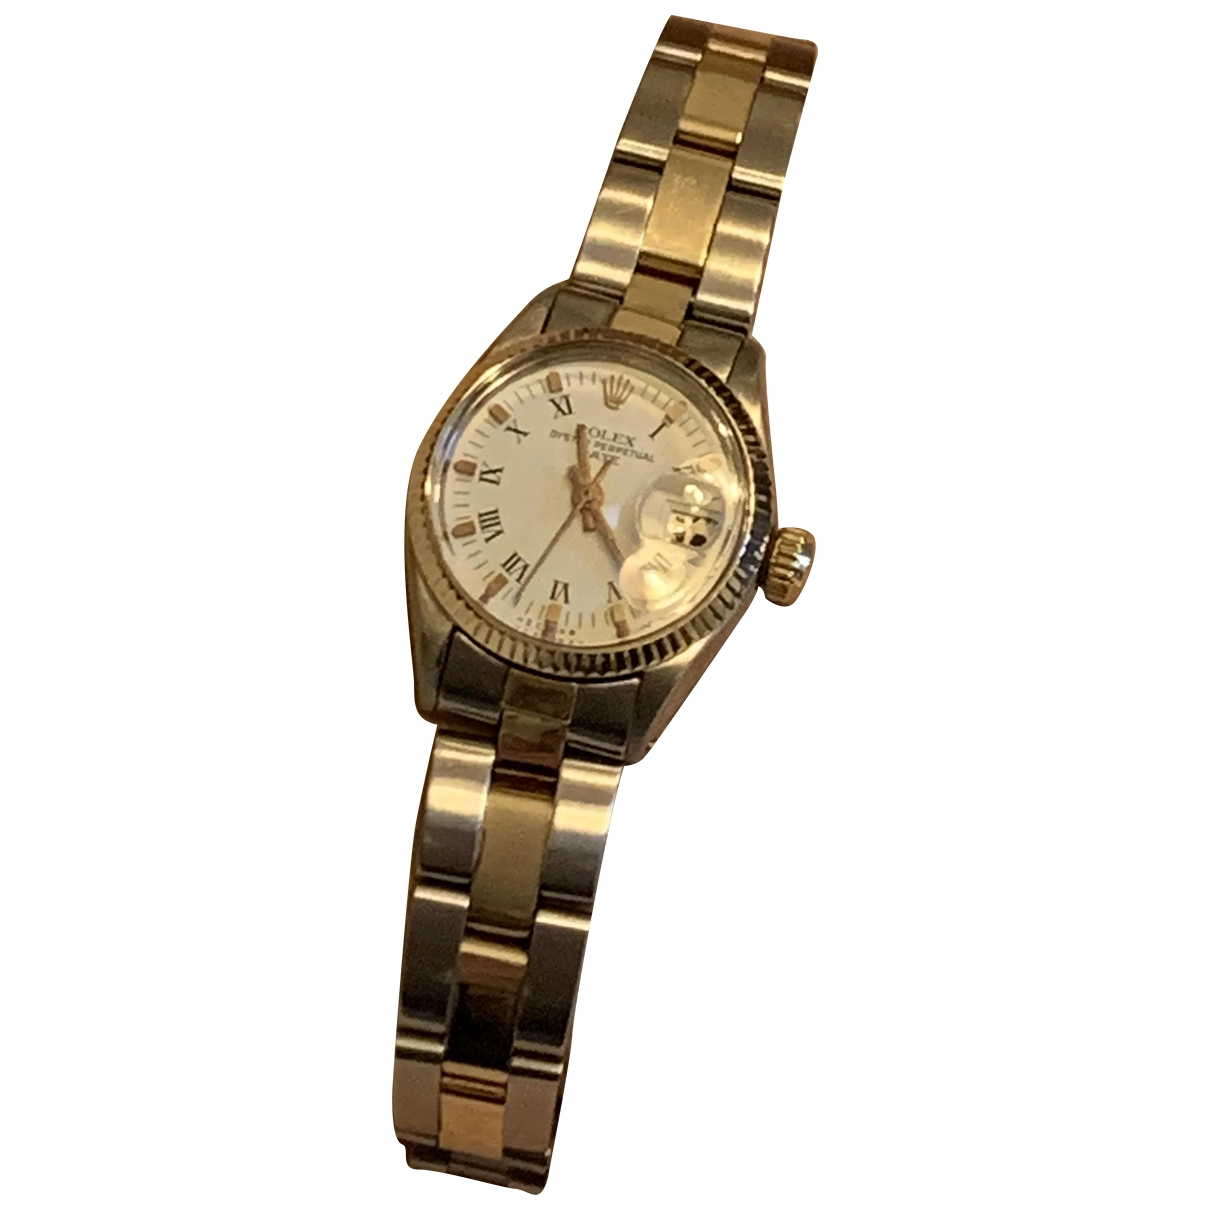 Rolex Lady Oyster Perpetual 24mm Uhr in Gold und Stahl